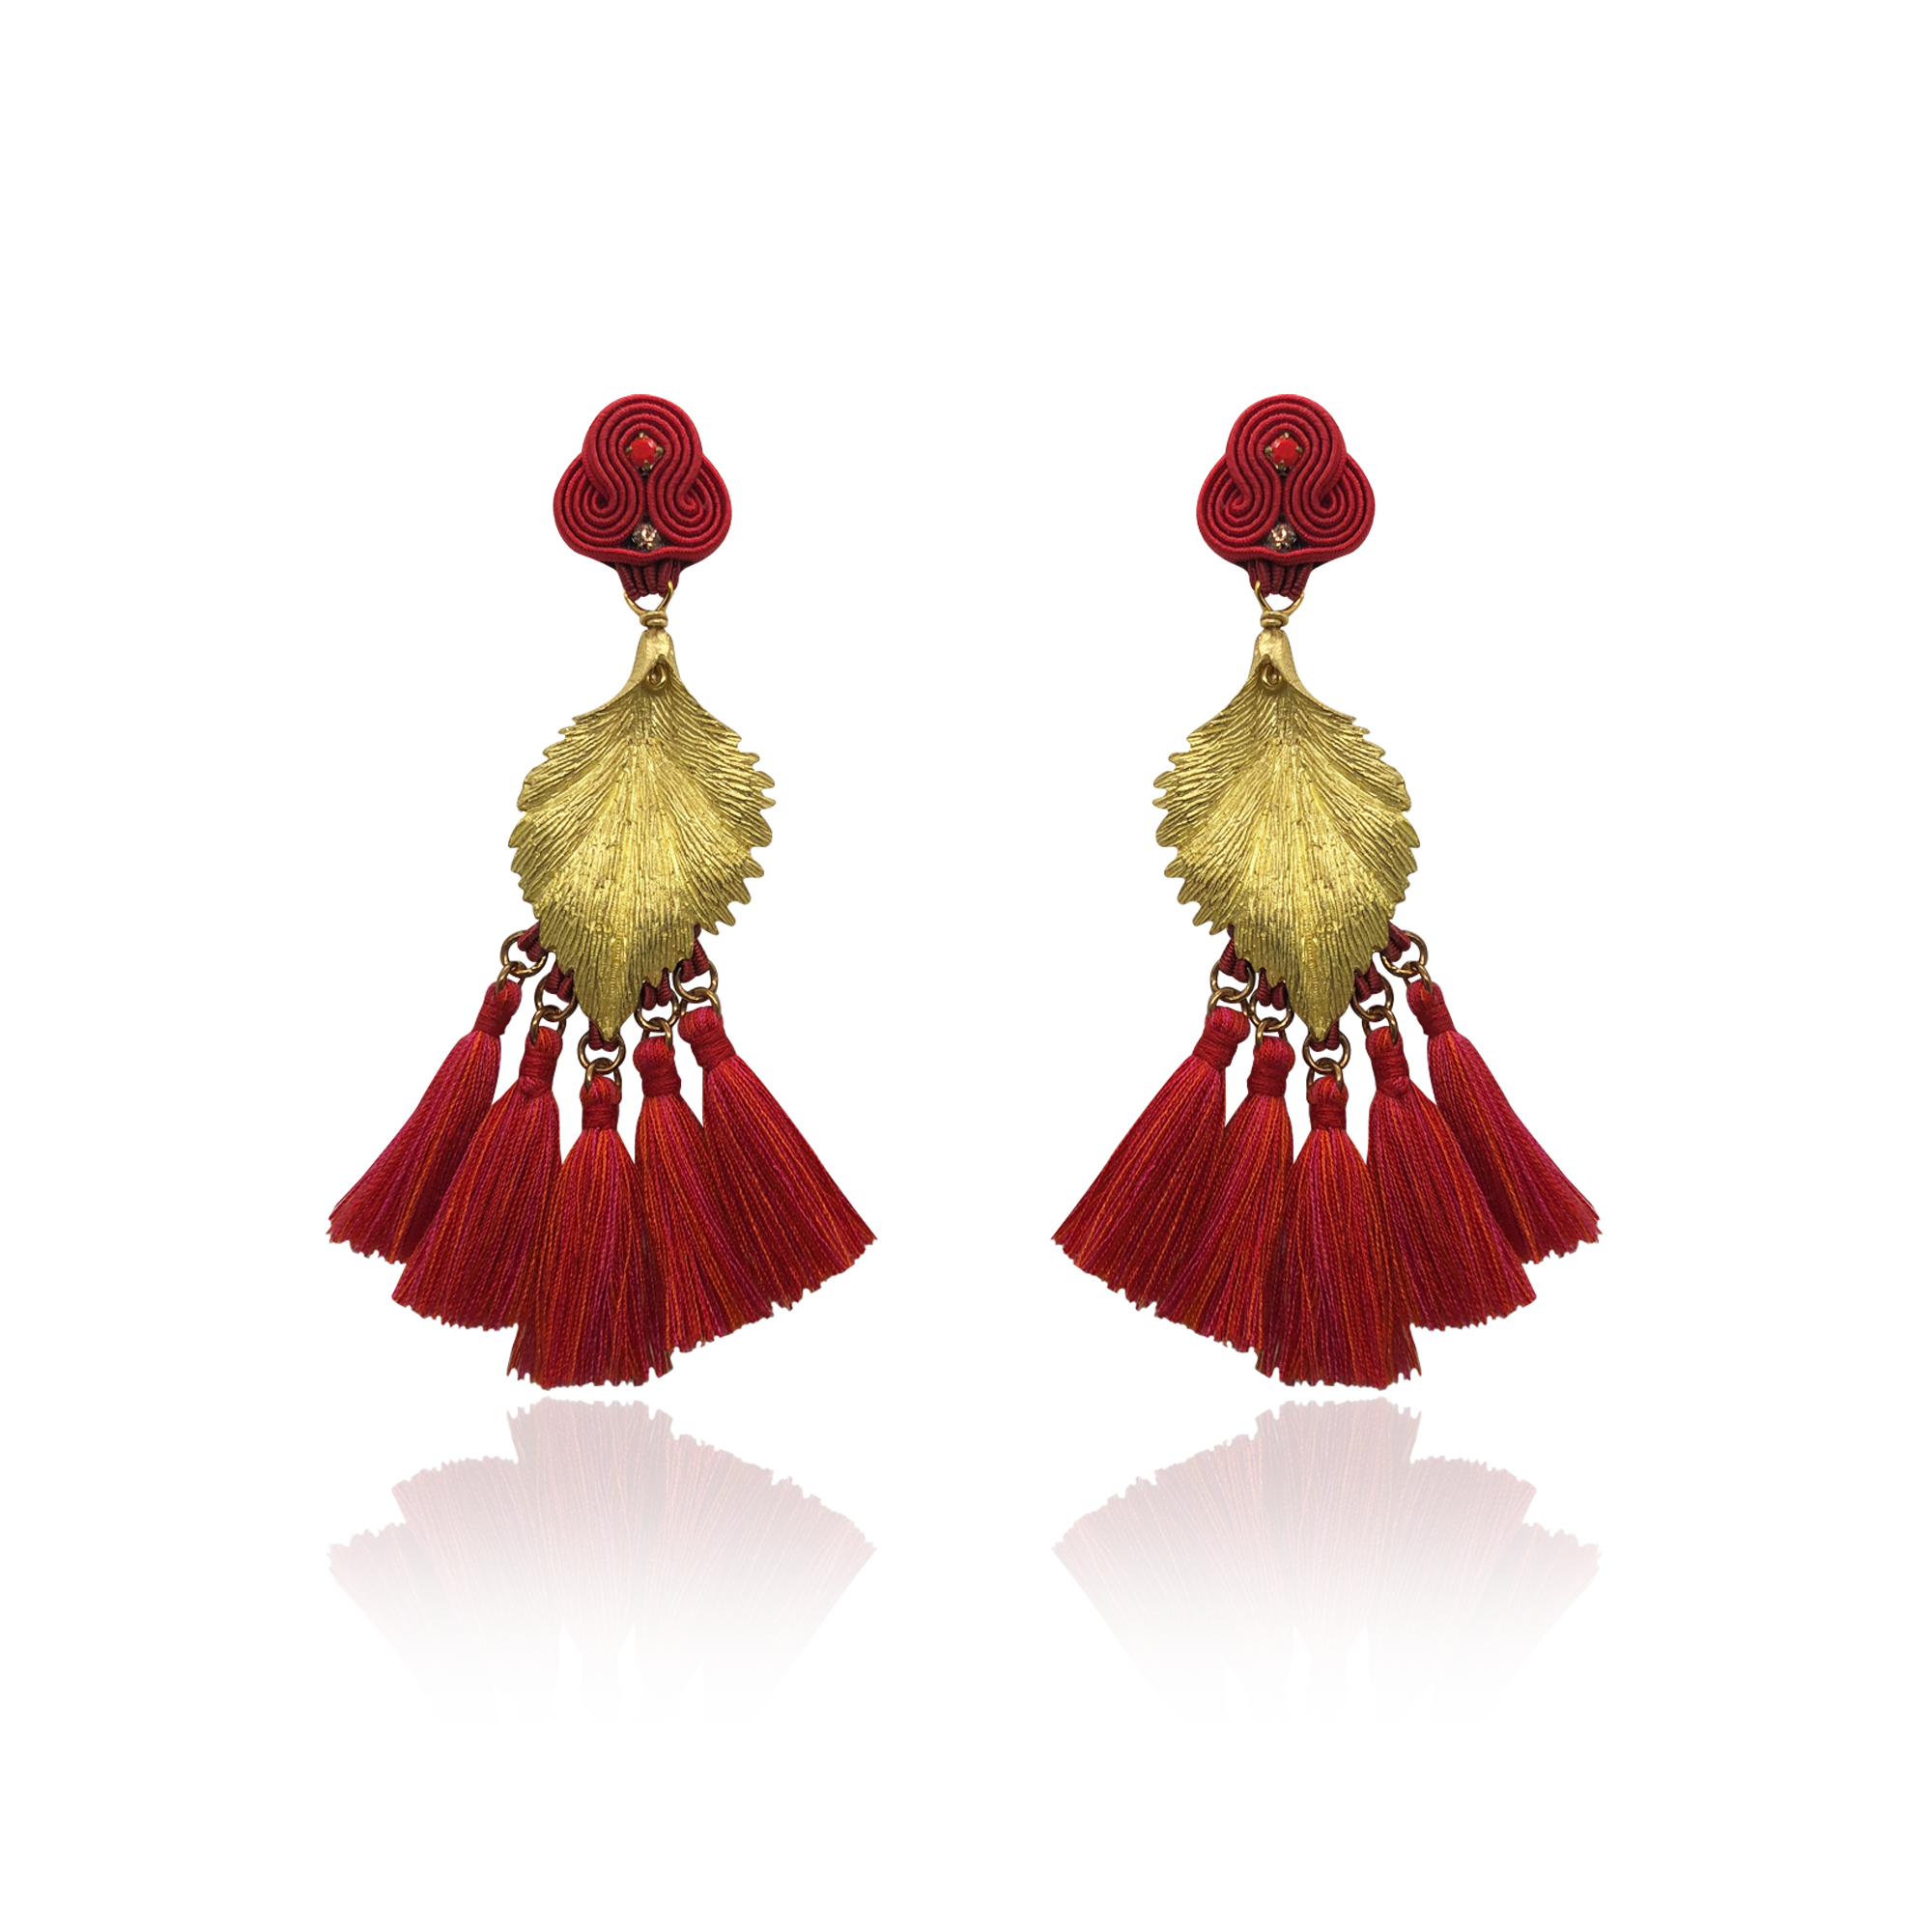 Gold Leaf and Red Tussel Earrings